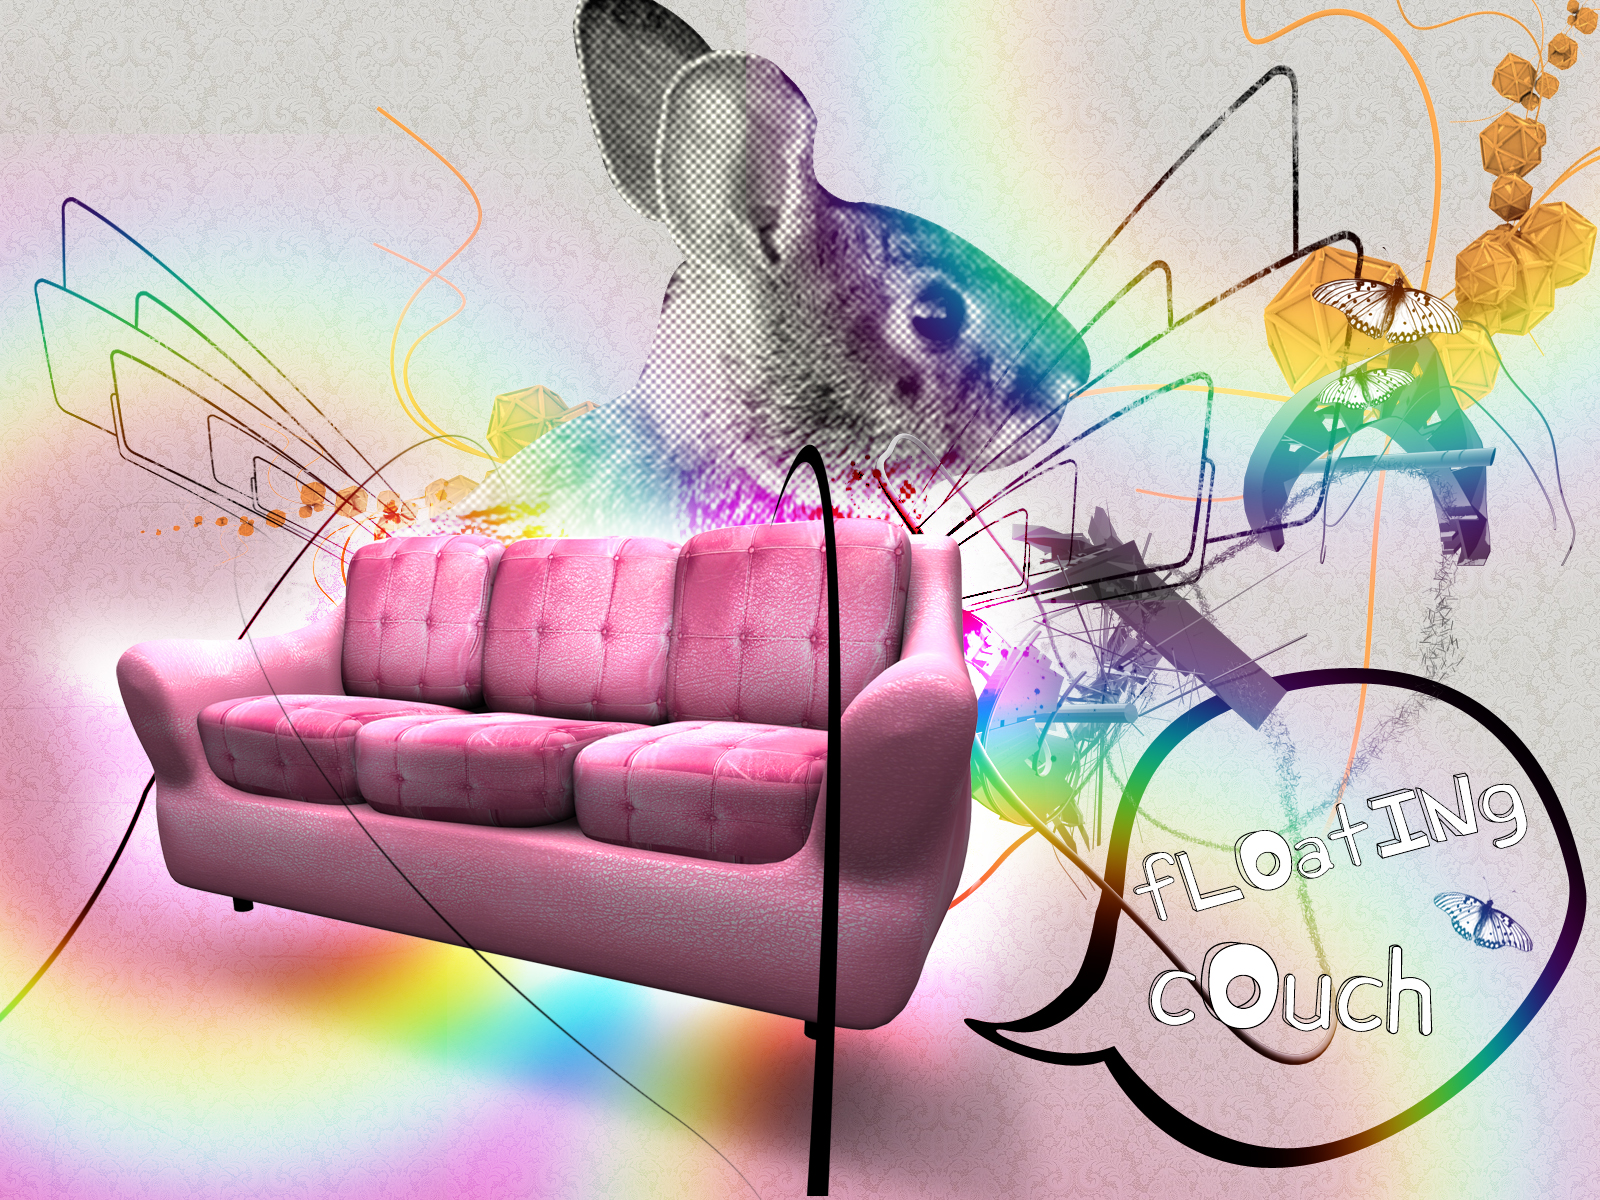 The Couch It Be-A-Floatin by smashmethod